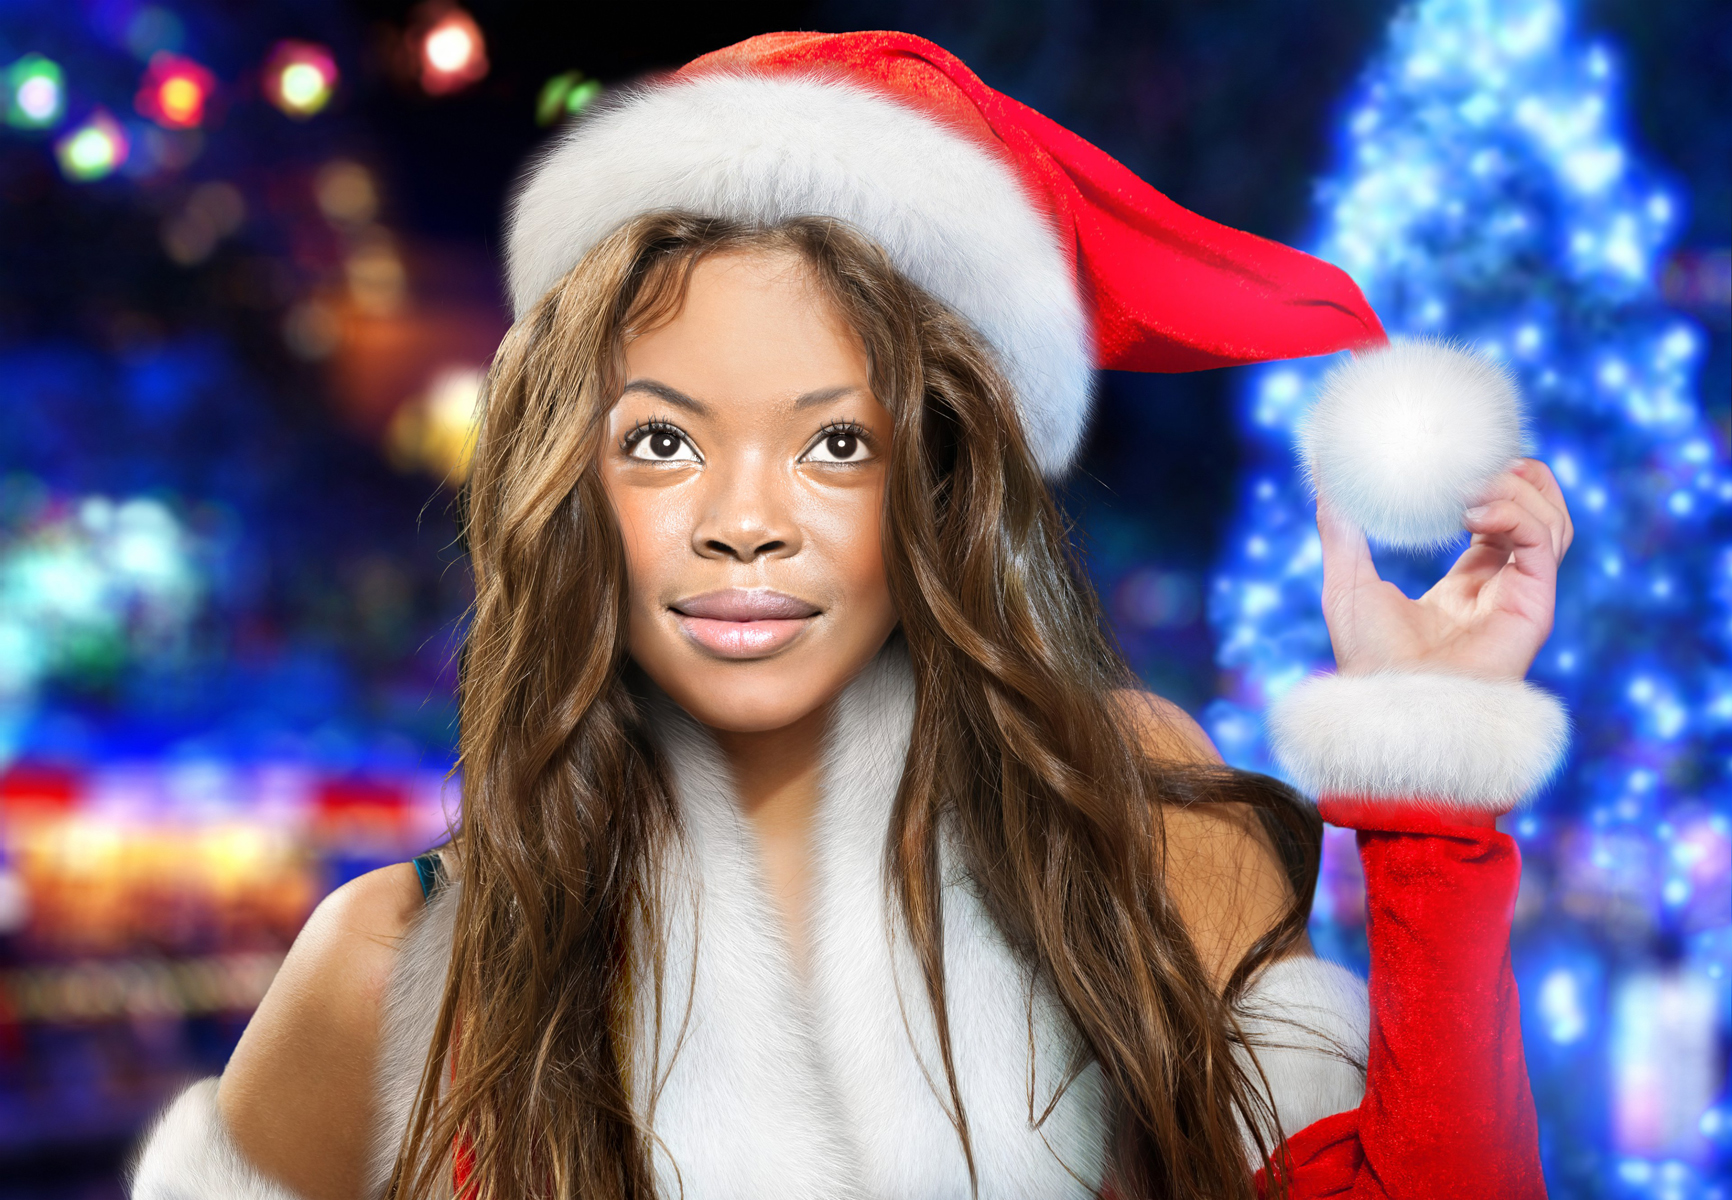 A girl has turned herself into a pretty Santa girl online